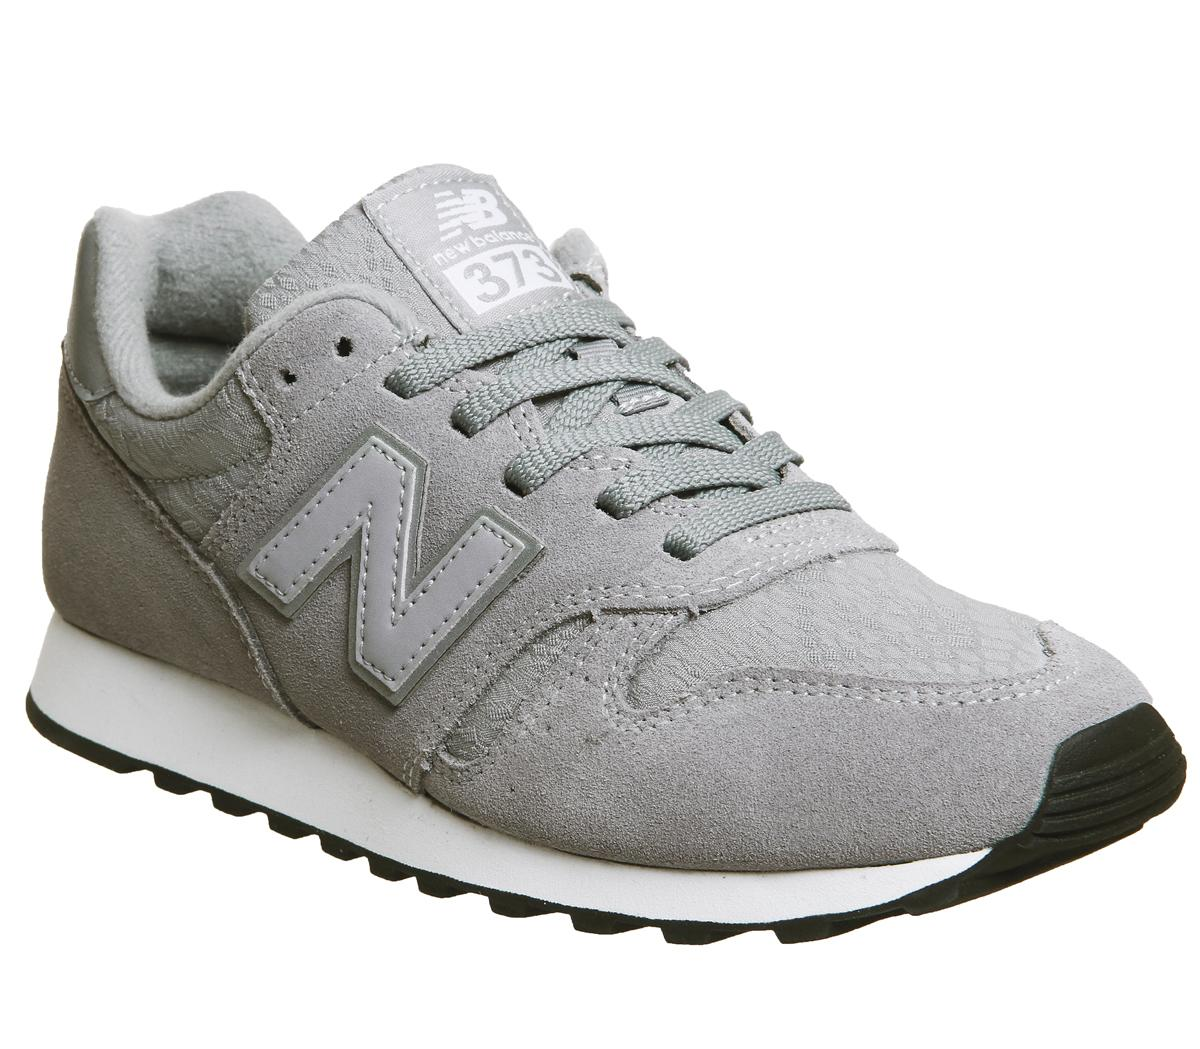 New Balance 373 Trainers Grey Lace